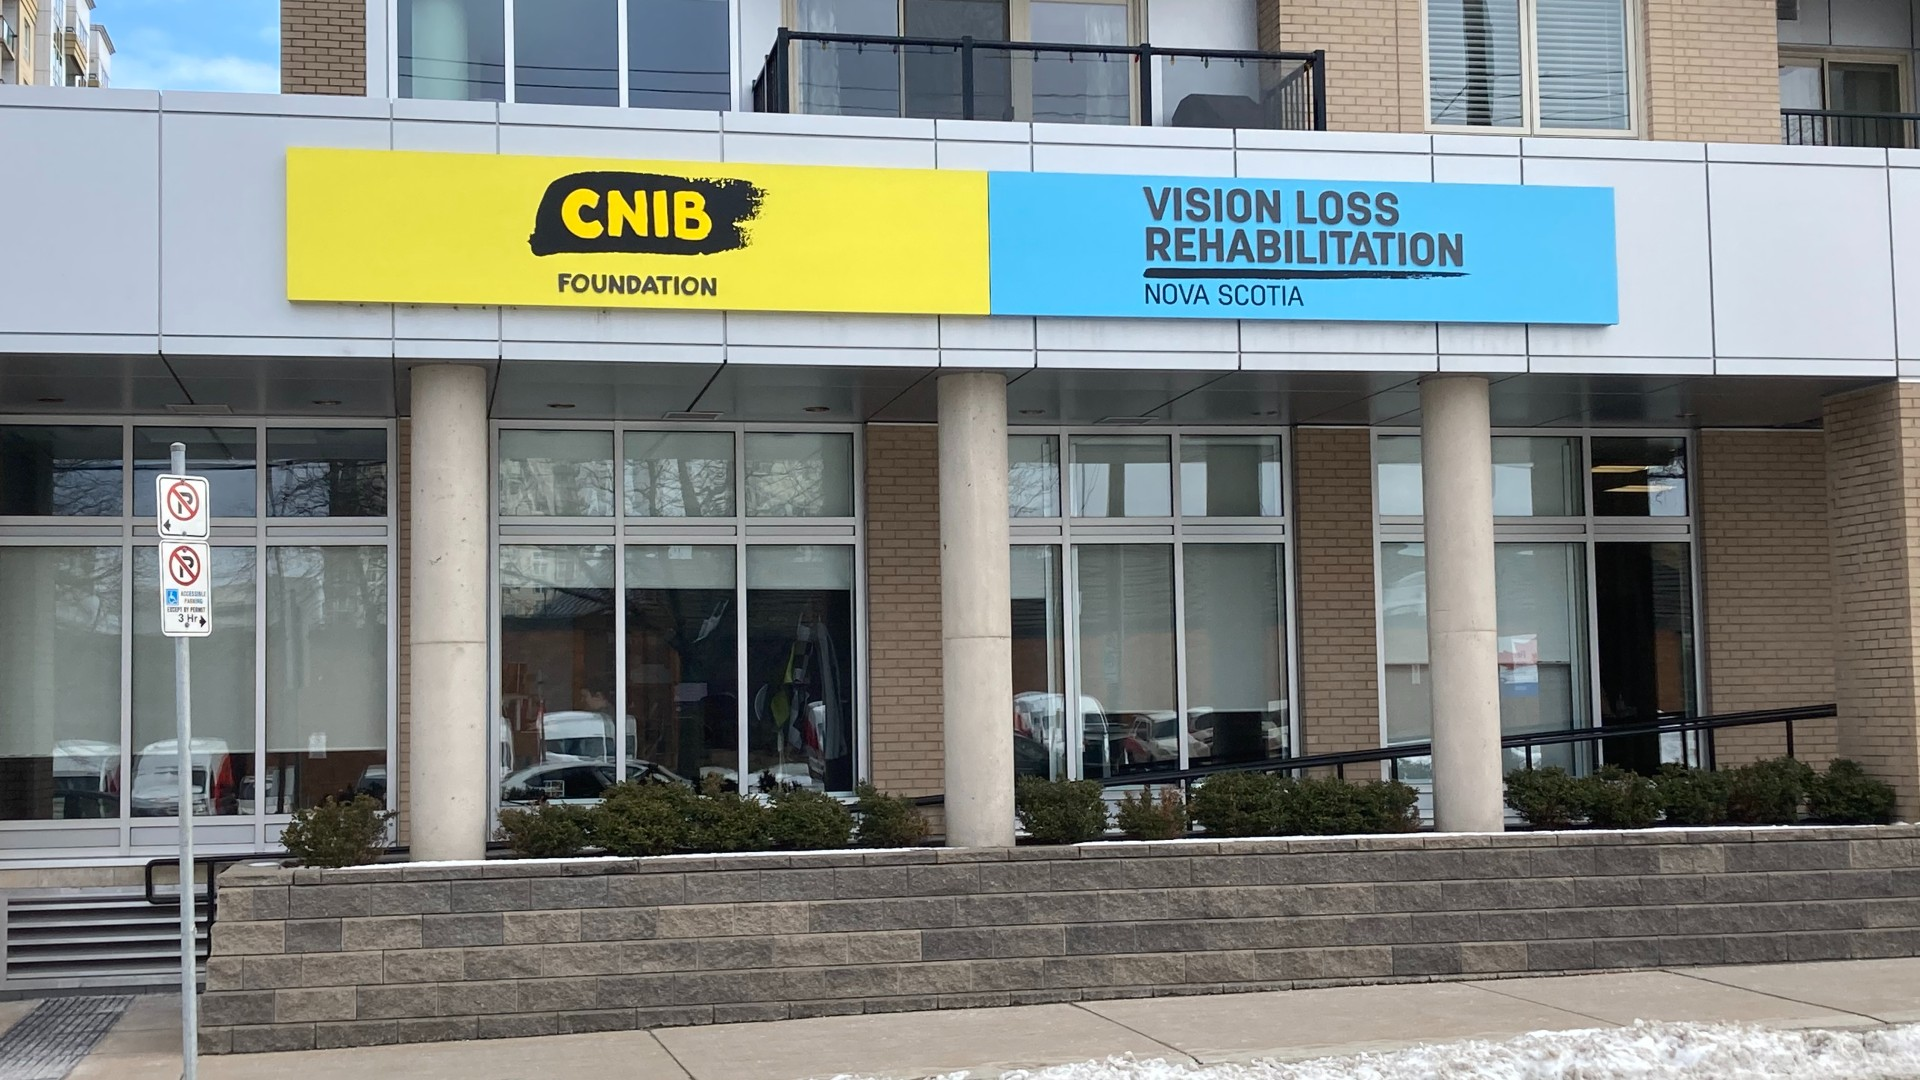 The CNIB Halifax branch is hard to access for many rural-living Nova Scotians in the blind community.